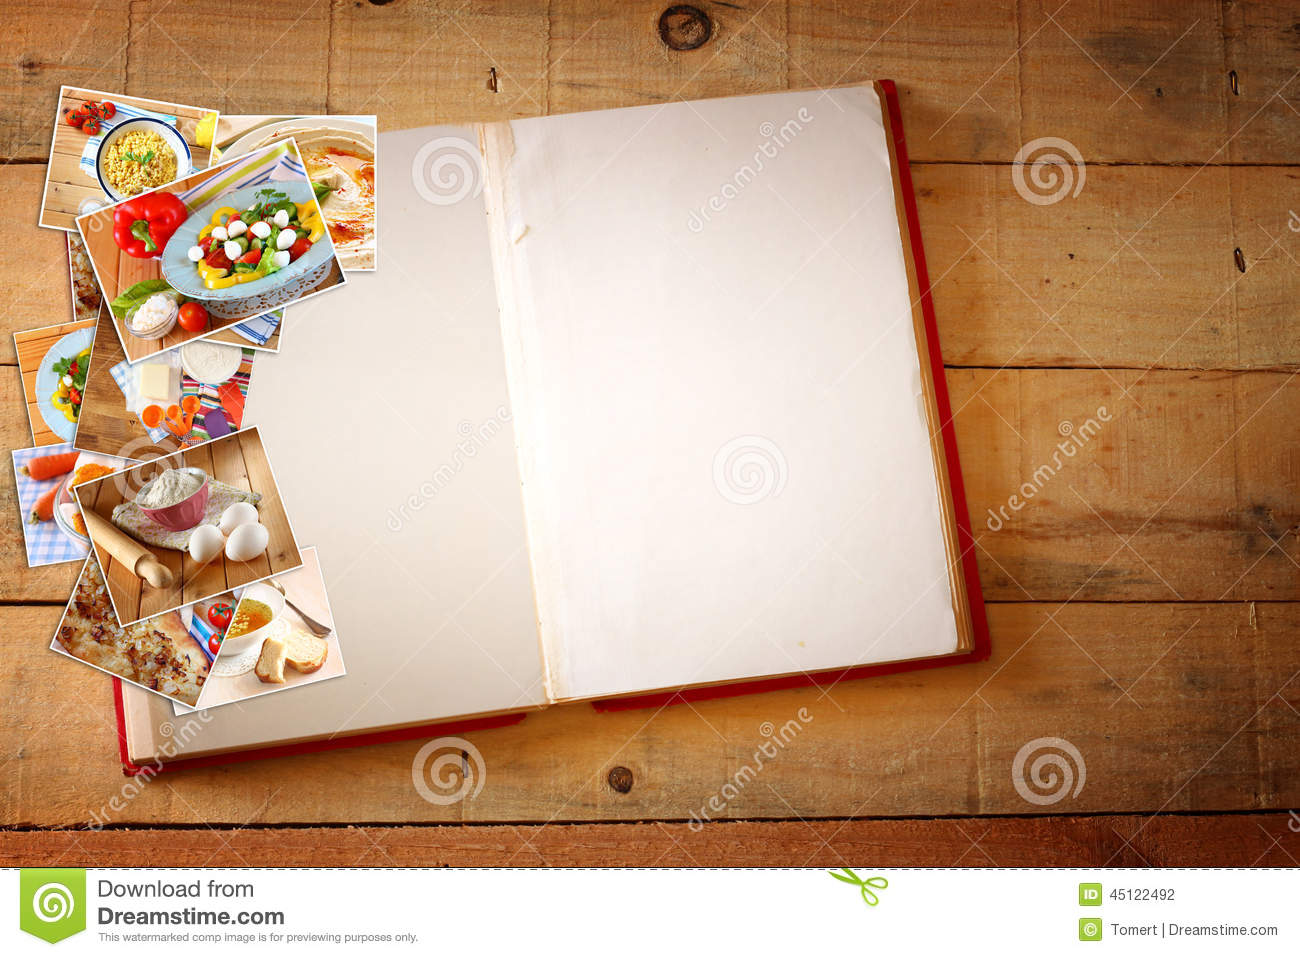 open recipe book with blank pages and collage of photos